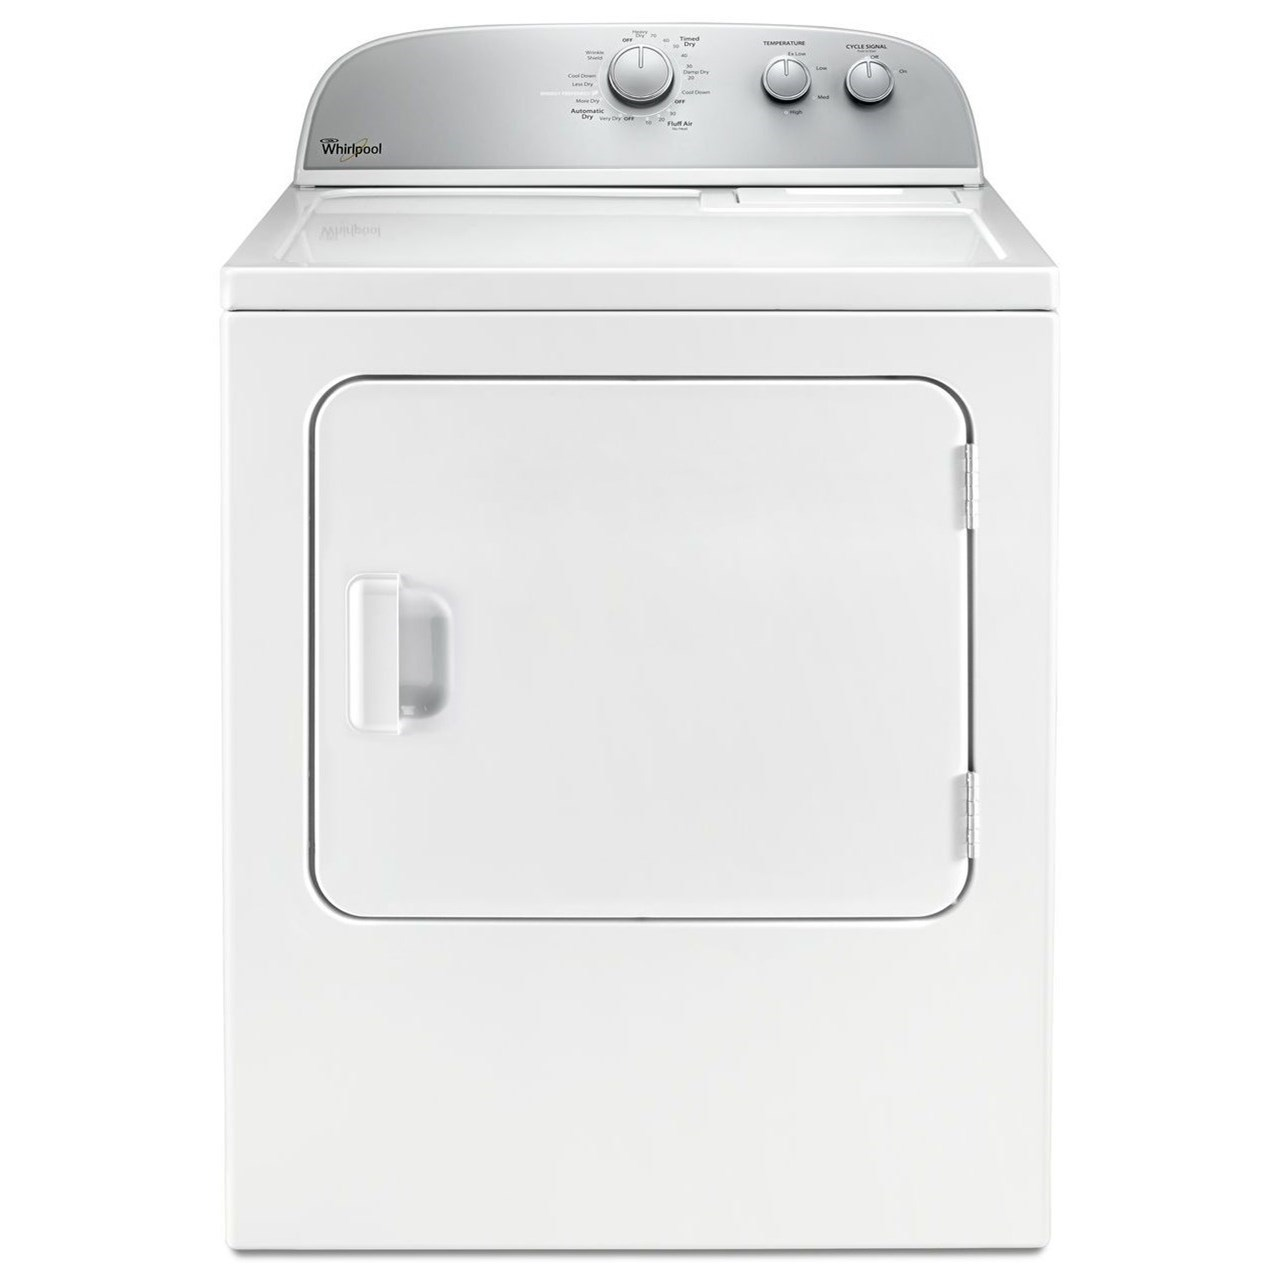 Whirlpool Electric Front Load Dryers 5.9 cu. ft. Top Load Electric Dryer - Item Number: WED4985EW